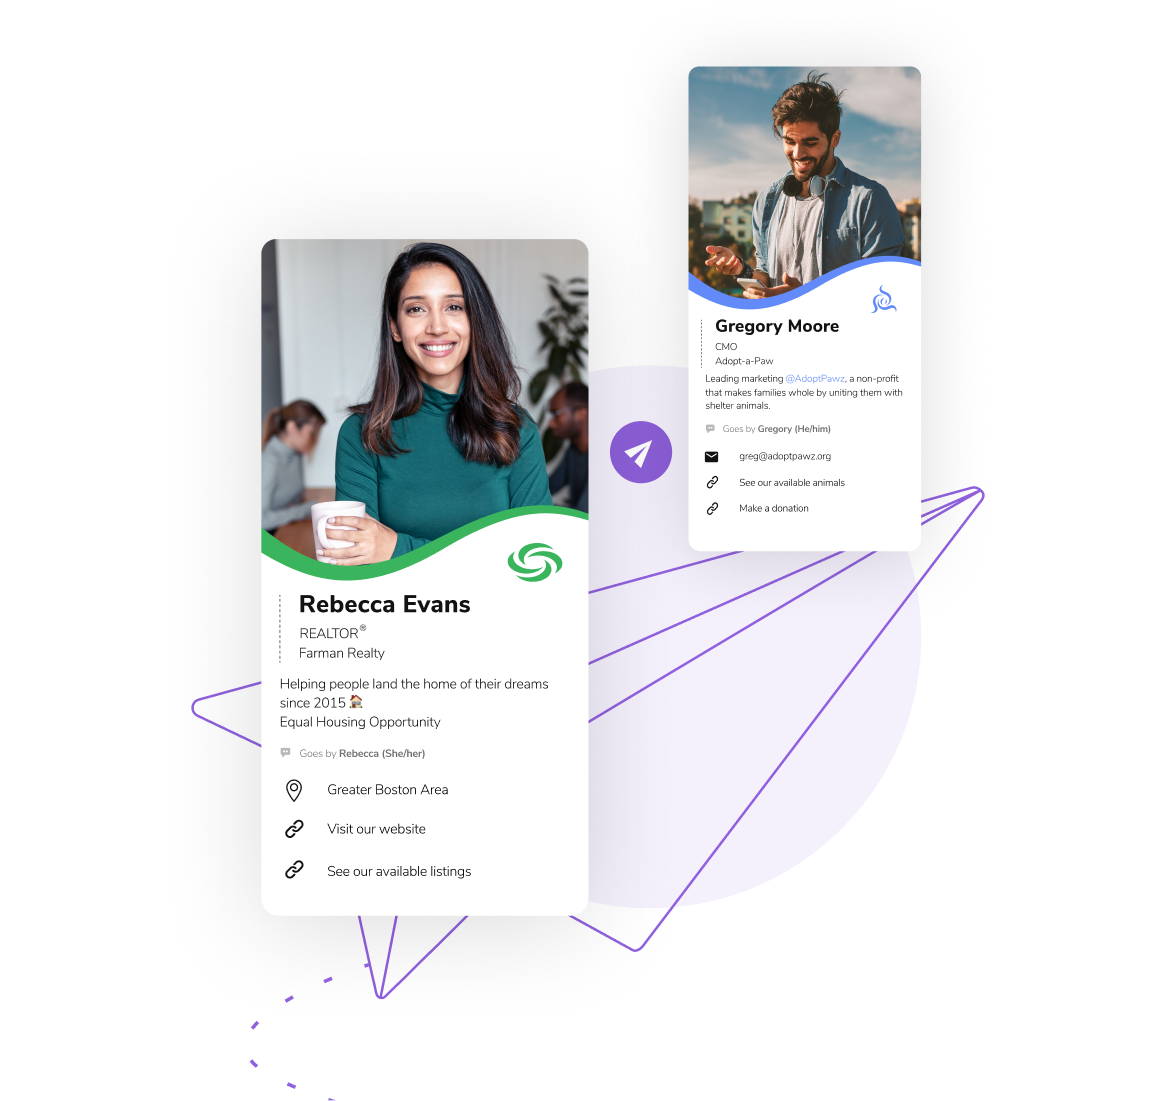 Share your HiHello digital business card